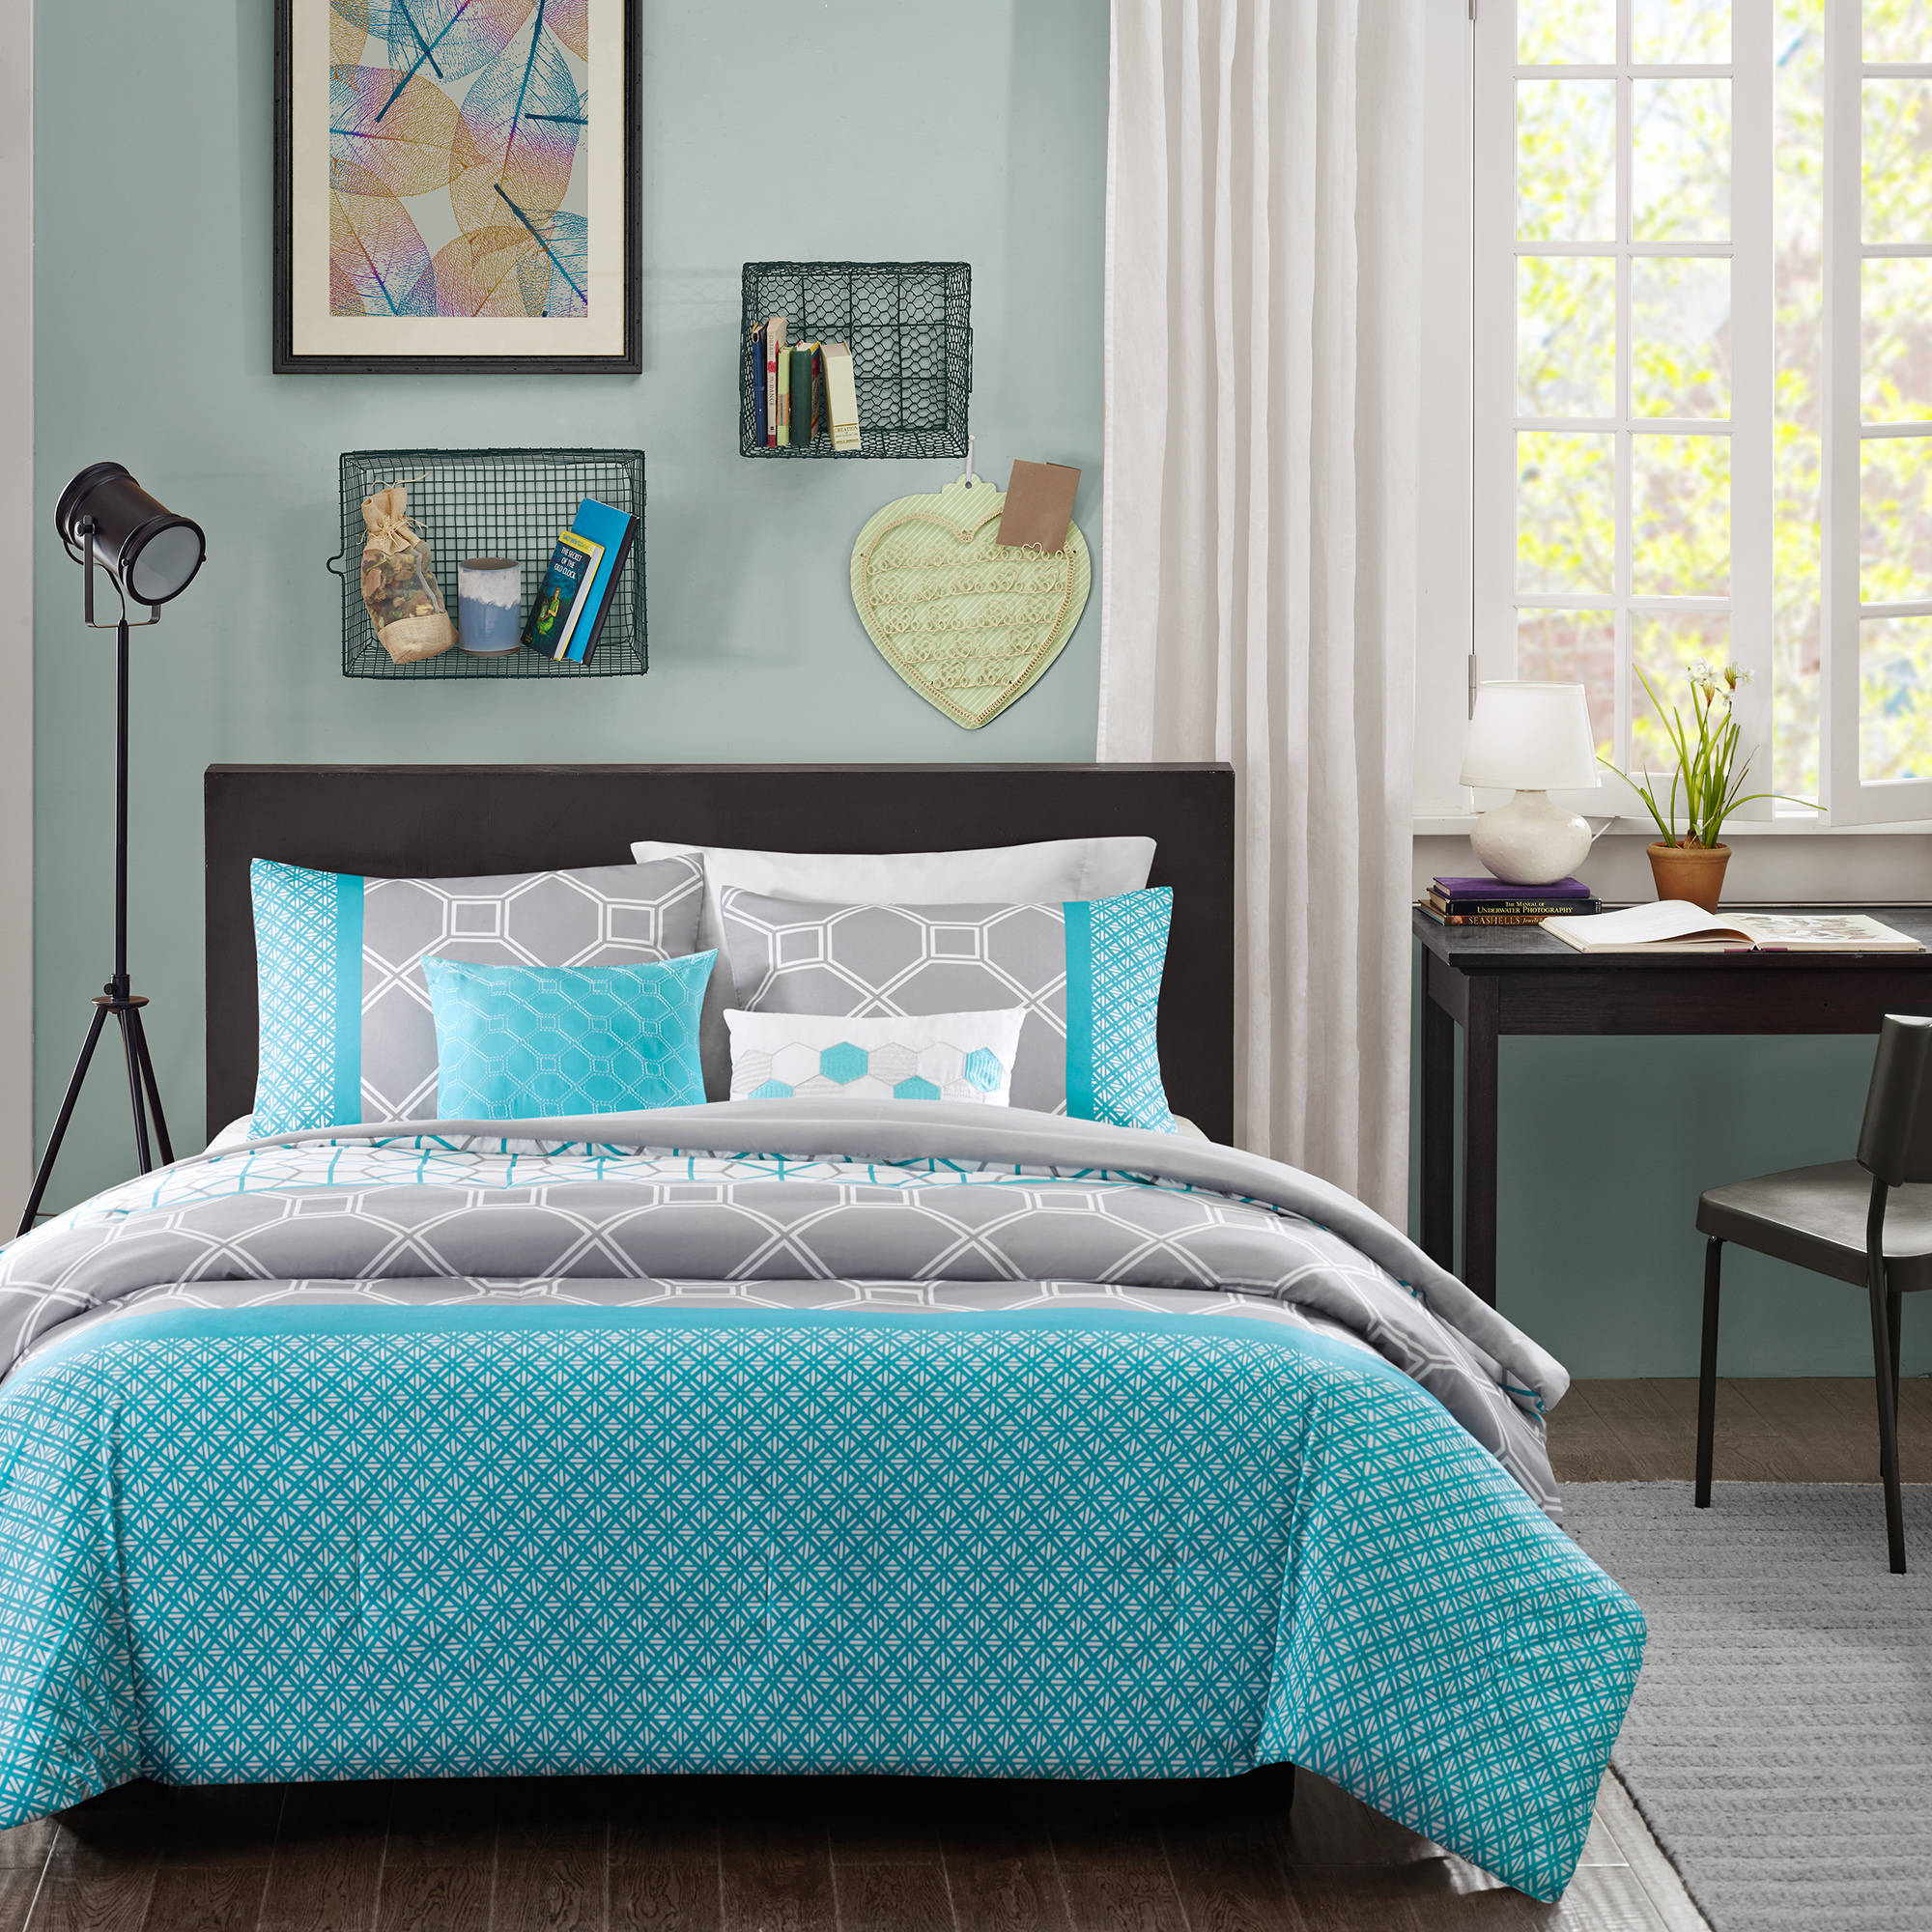 forter Bedroom 5 Piece Queen Bedding Aqua Blue Grey Set Winter